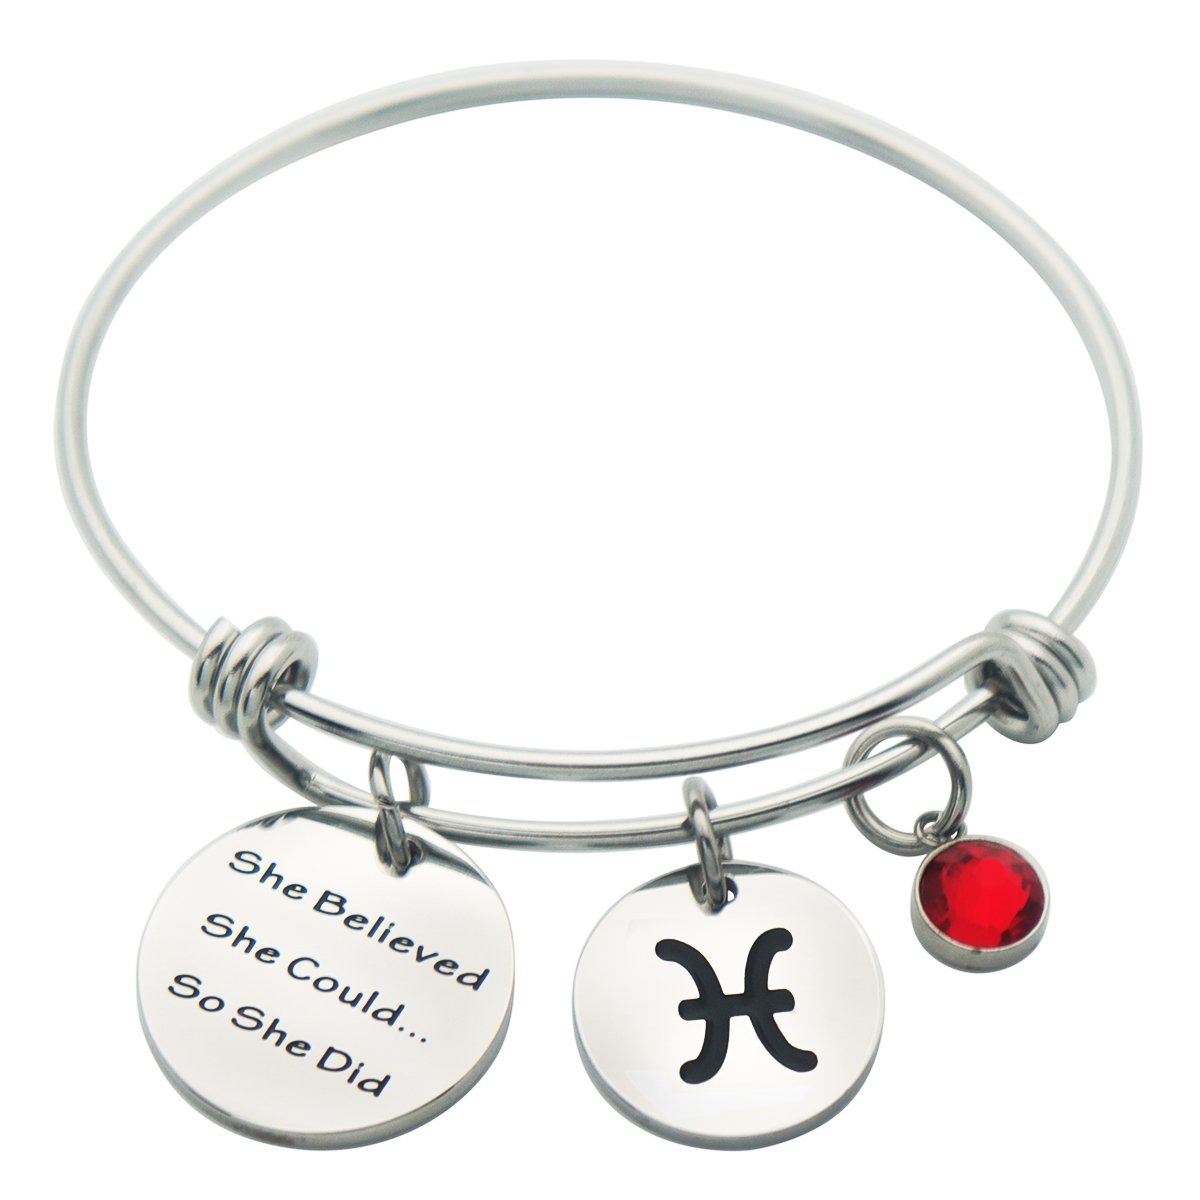 3.21-4.19 Aries Kingmaruo She Believed She Could So She Did Expendable Bangle Bracelet with Zodiac Signs Charm